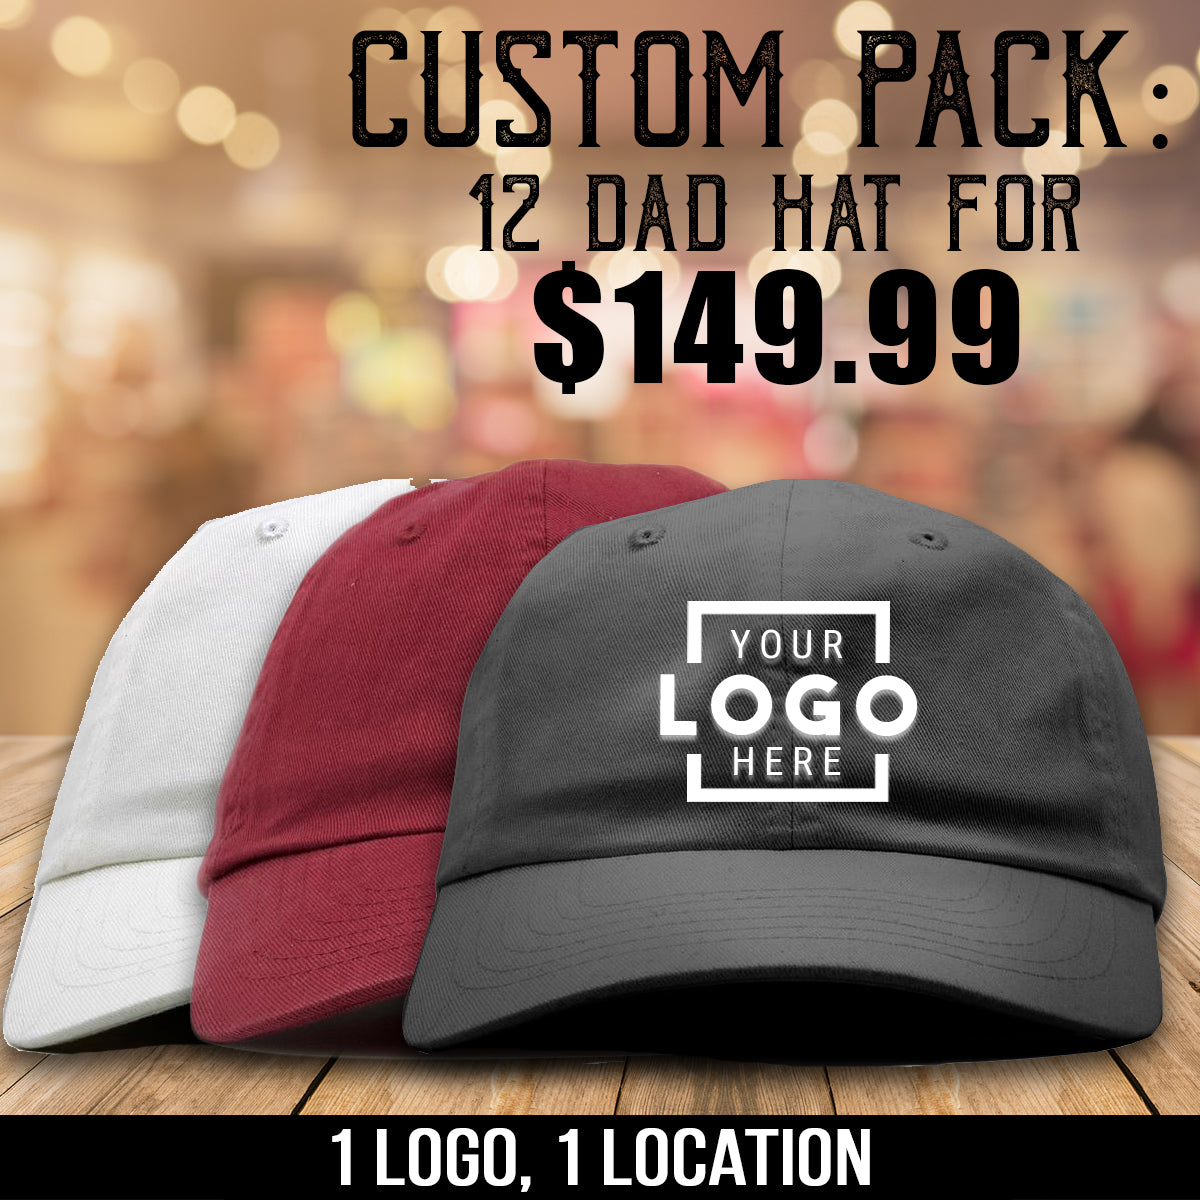 Get 12 custom embroidered dad hats for $149.99